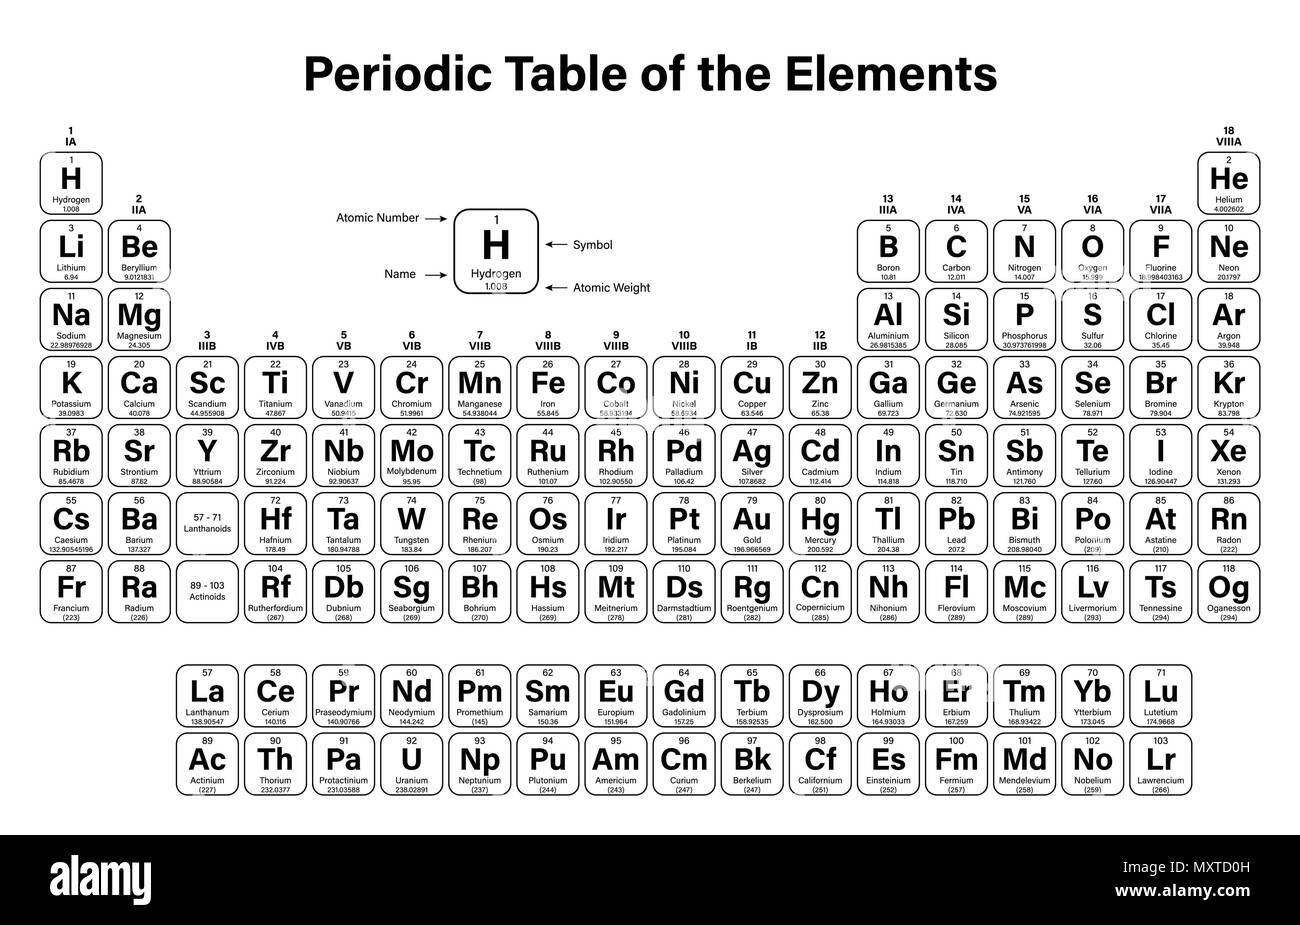 Periodic Table Of The Elements Vector Illustration Shows Atomic